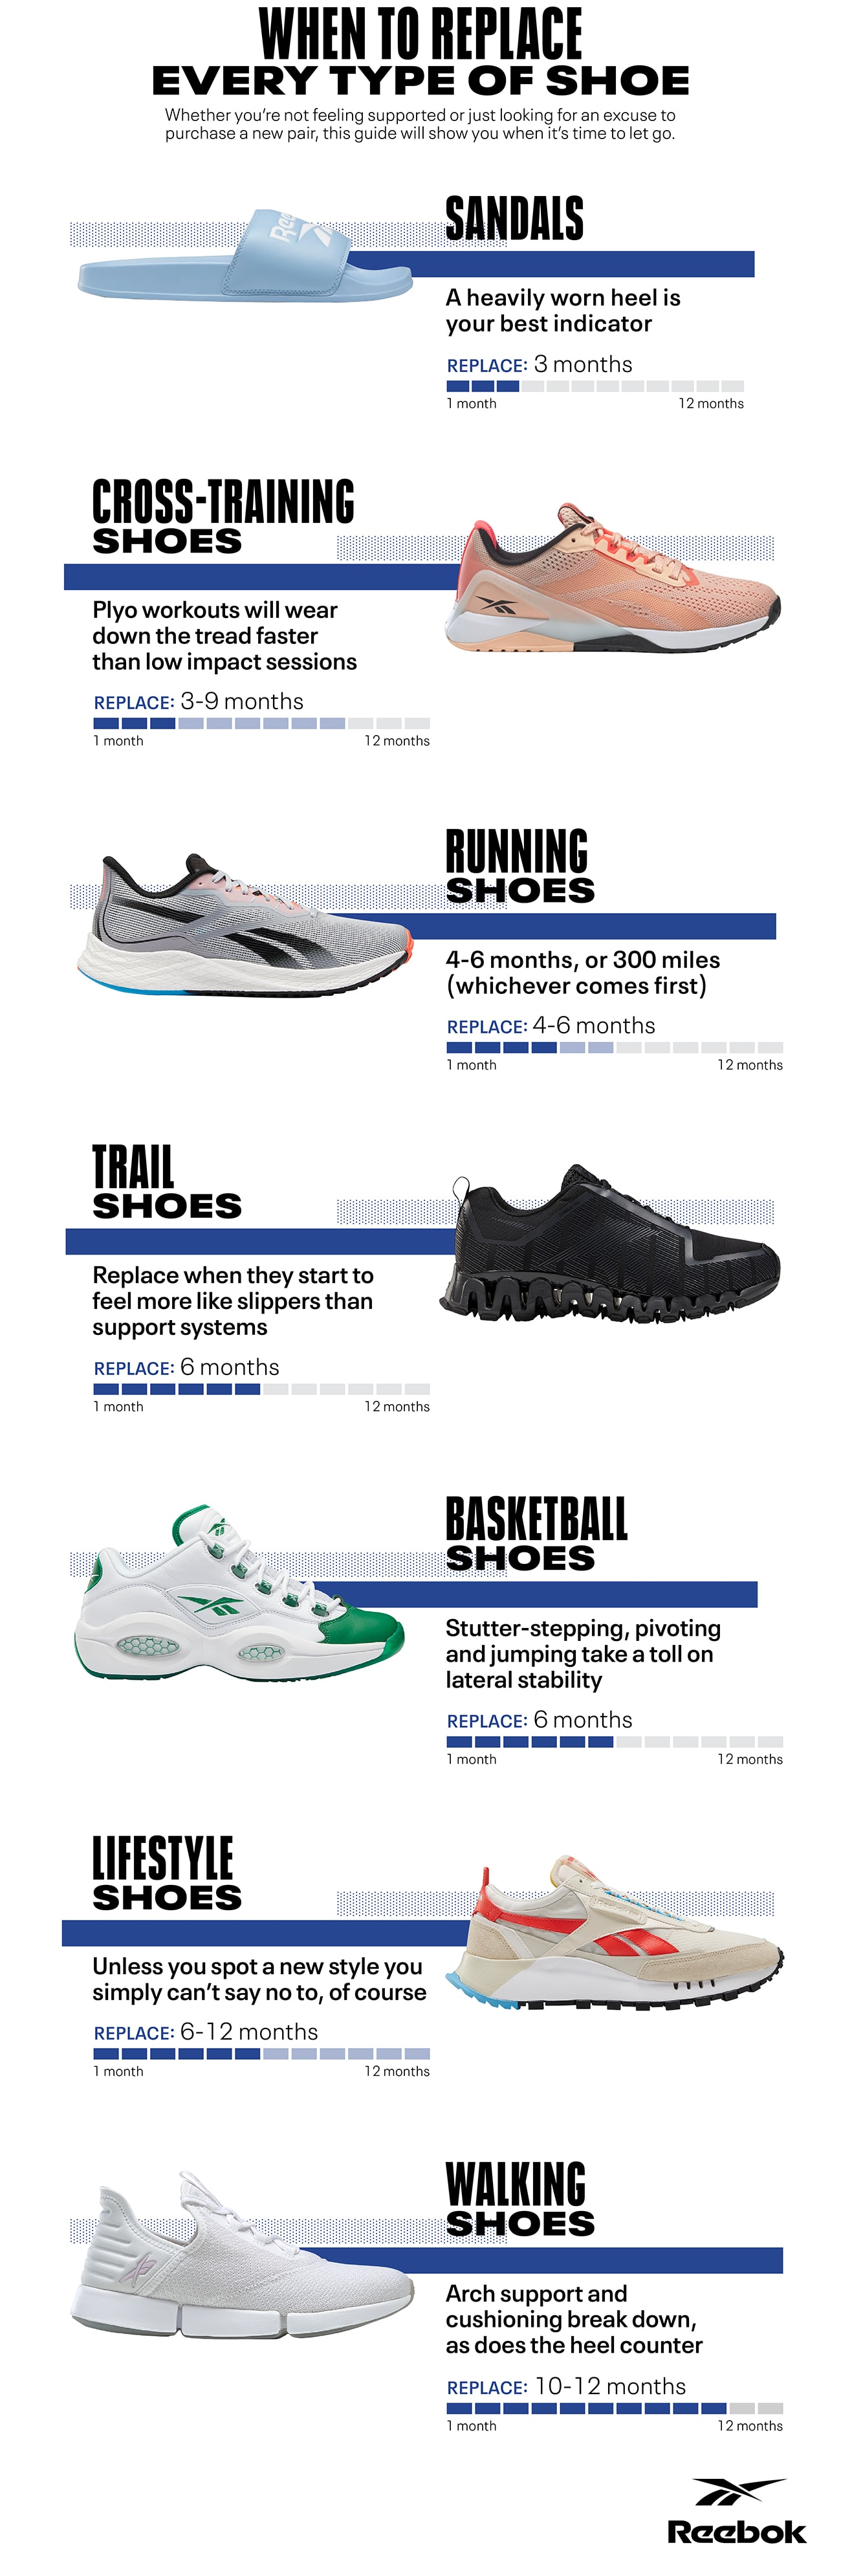 When to Replace Every Type of Shoe_rev